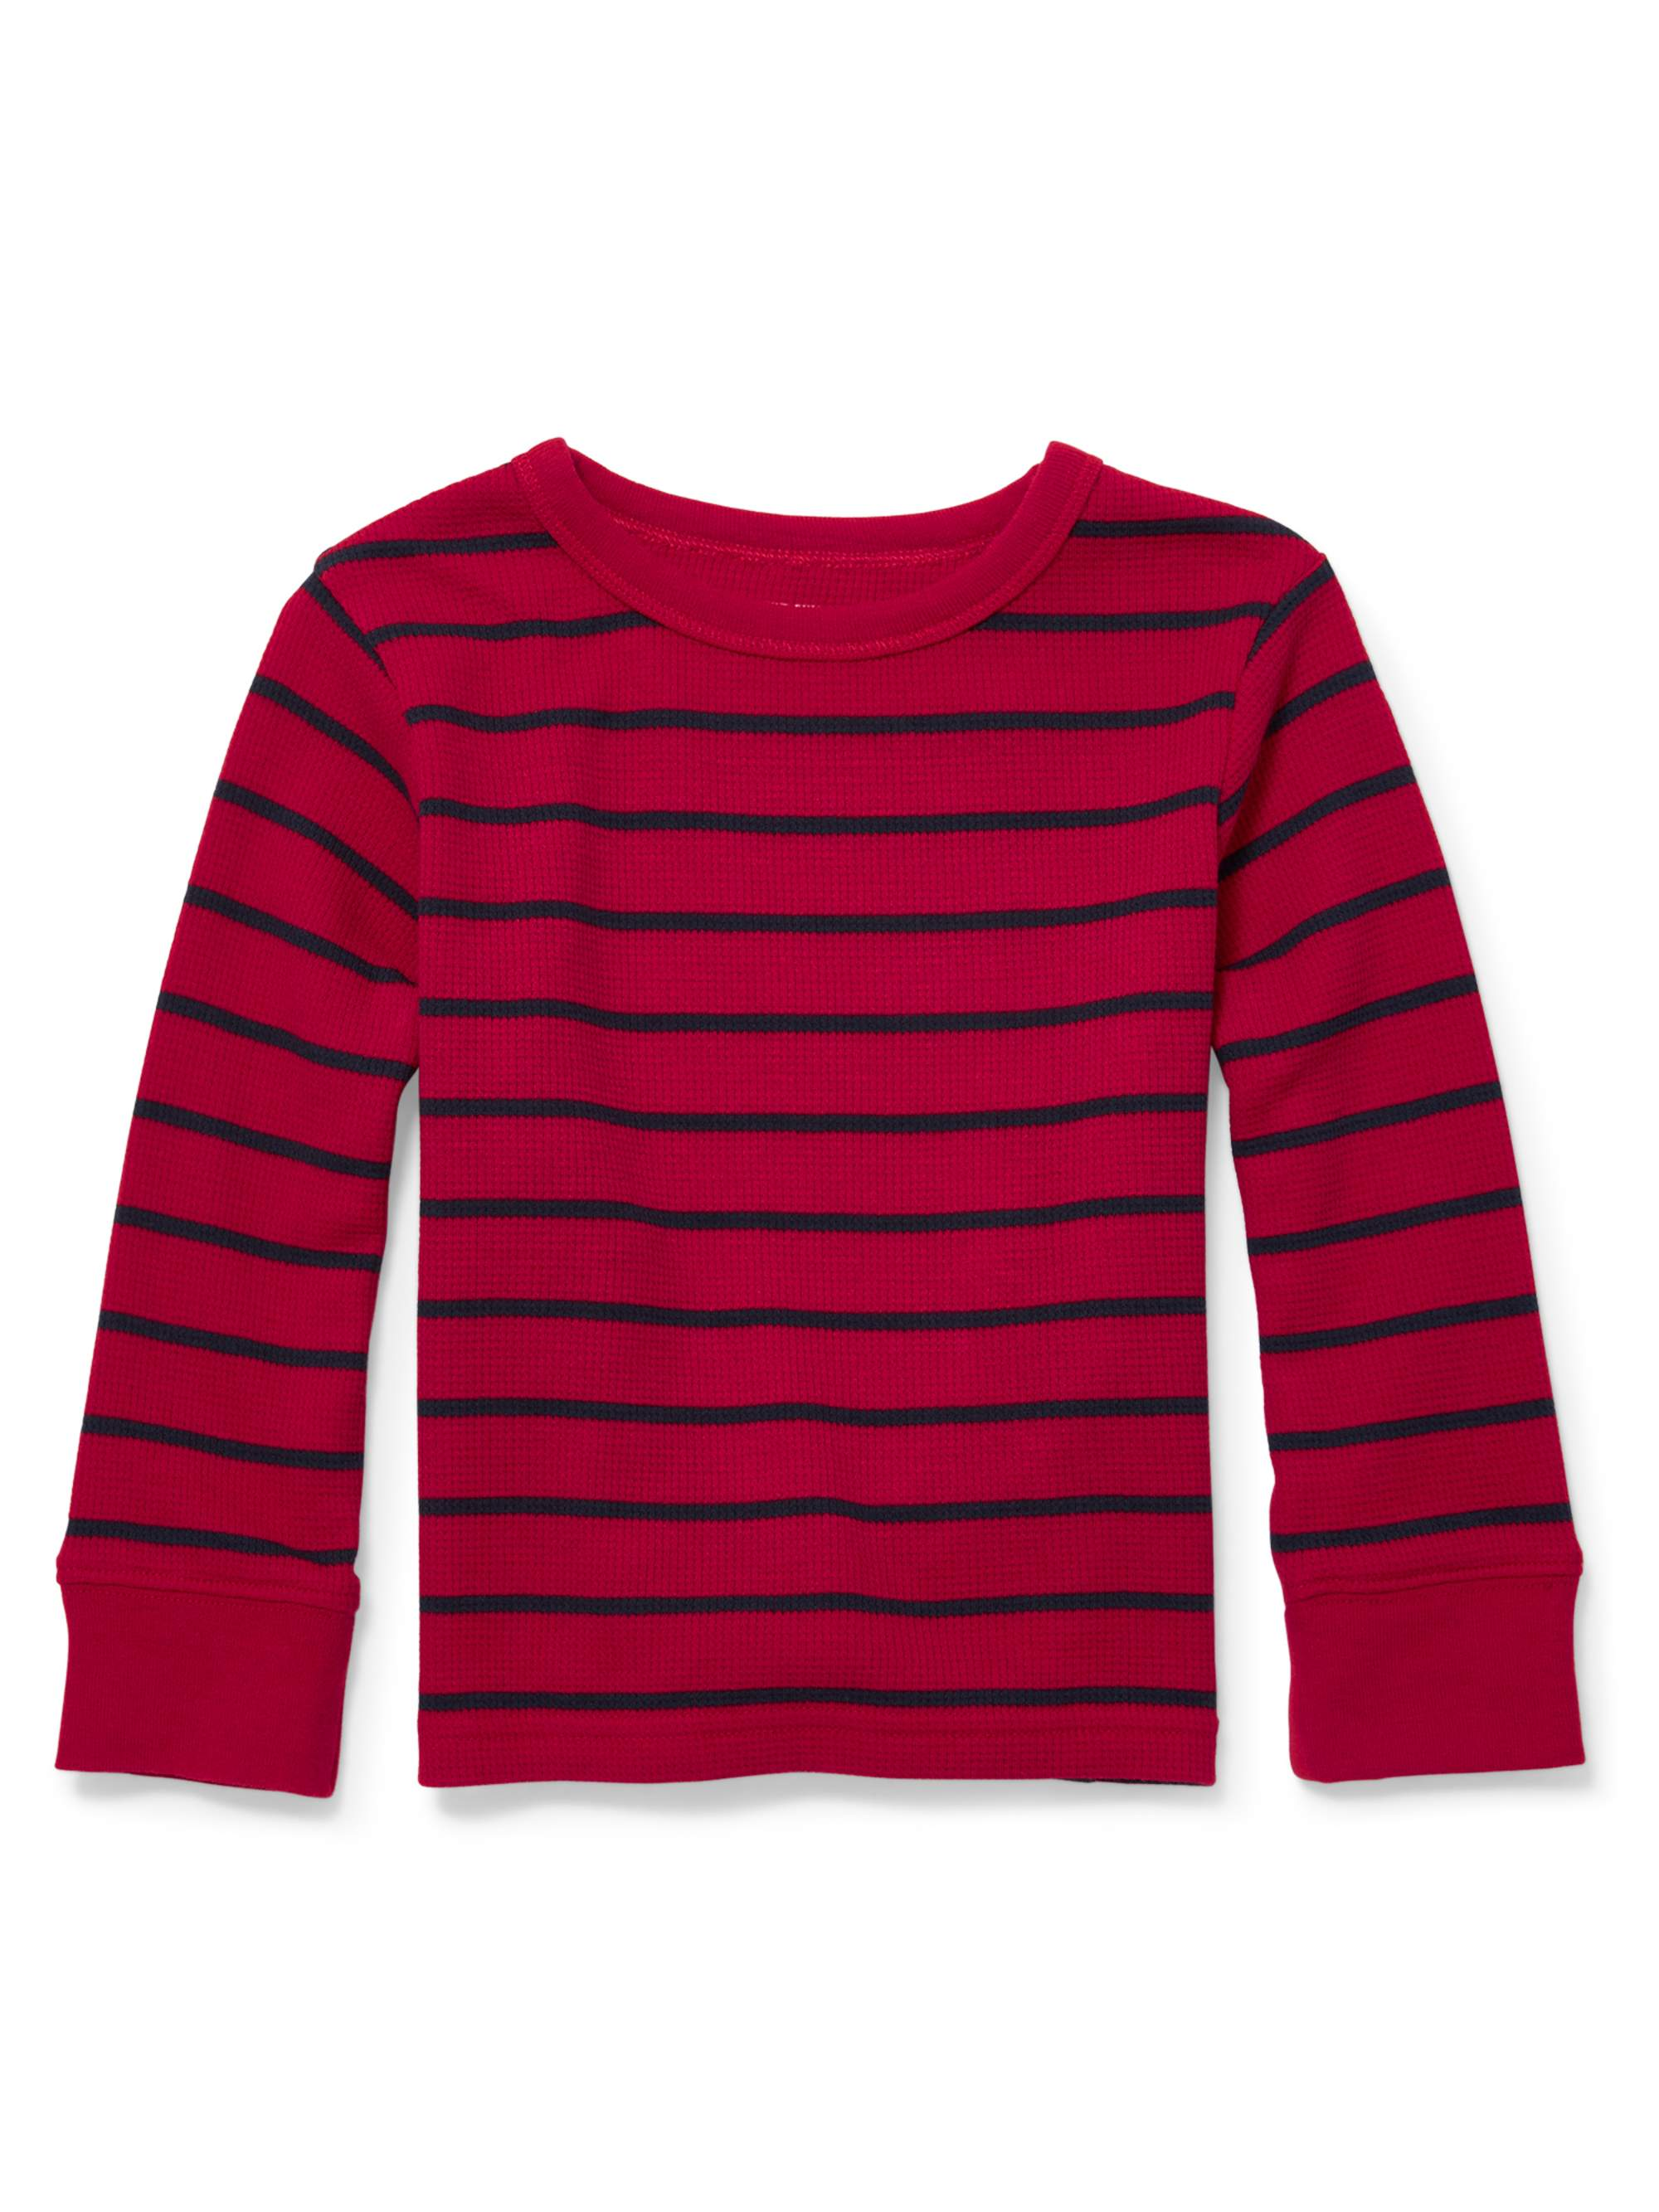 5e41b536bd2c The Children s Place - Baby And Toddler Boys Long Sleeve Striped ...